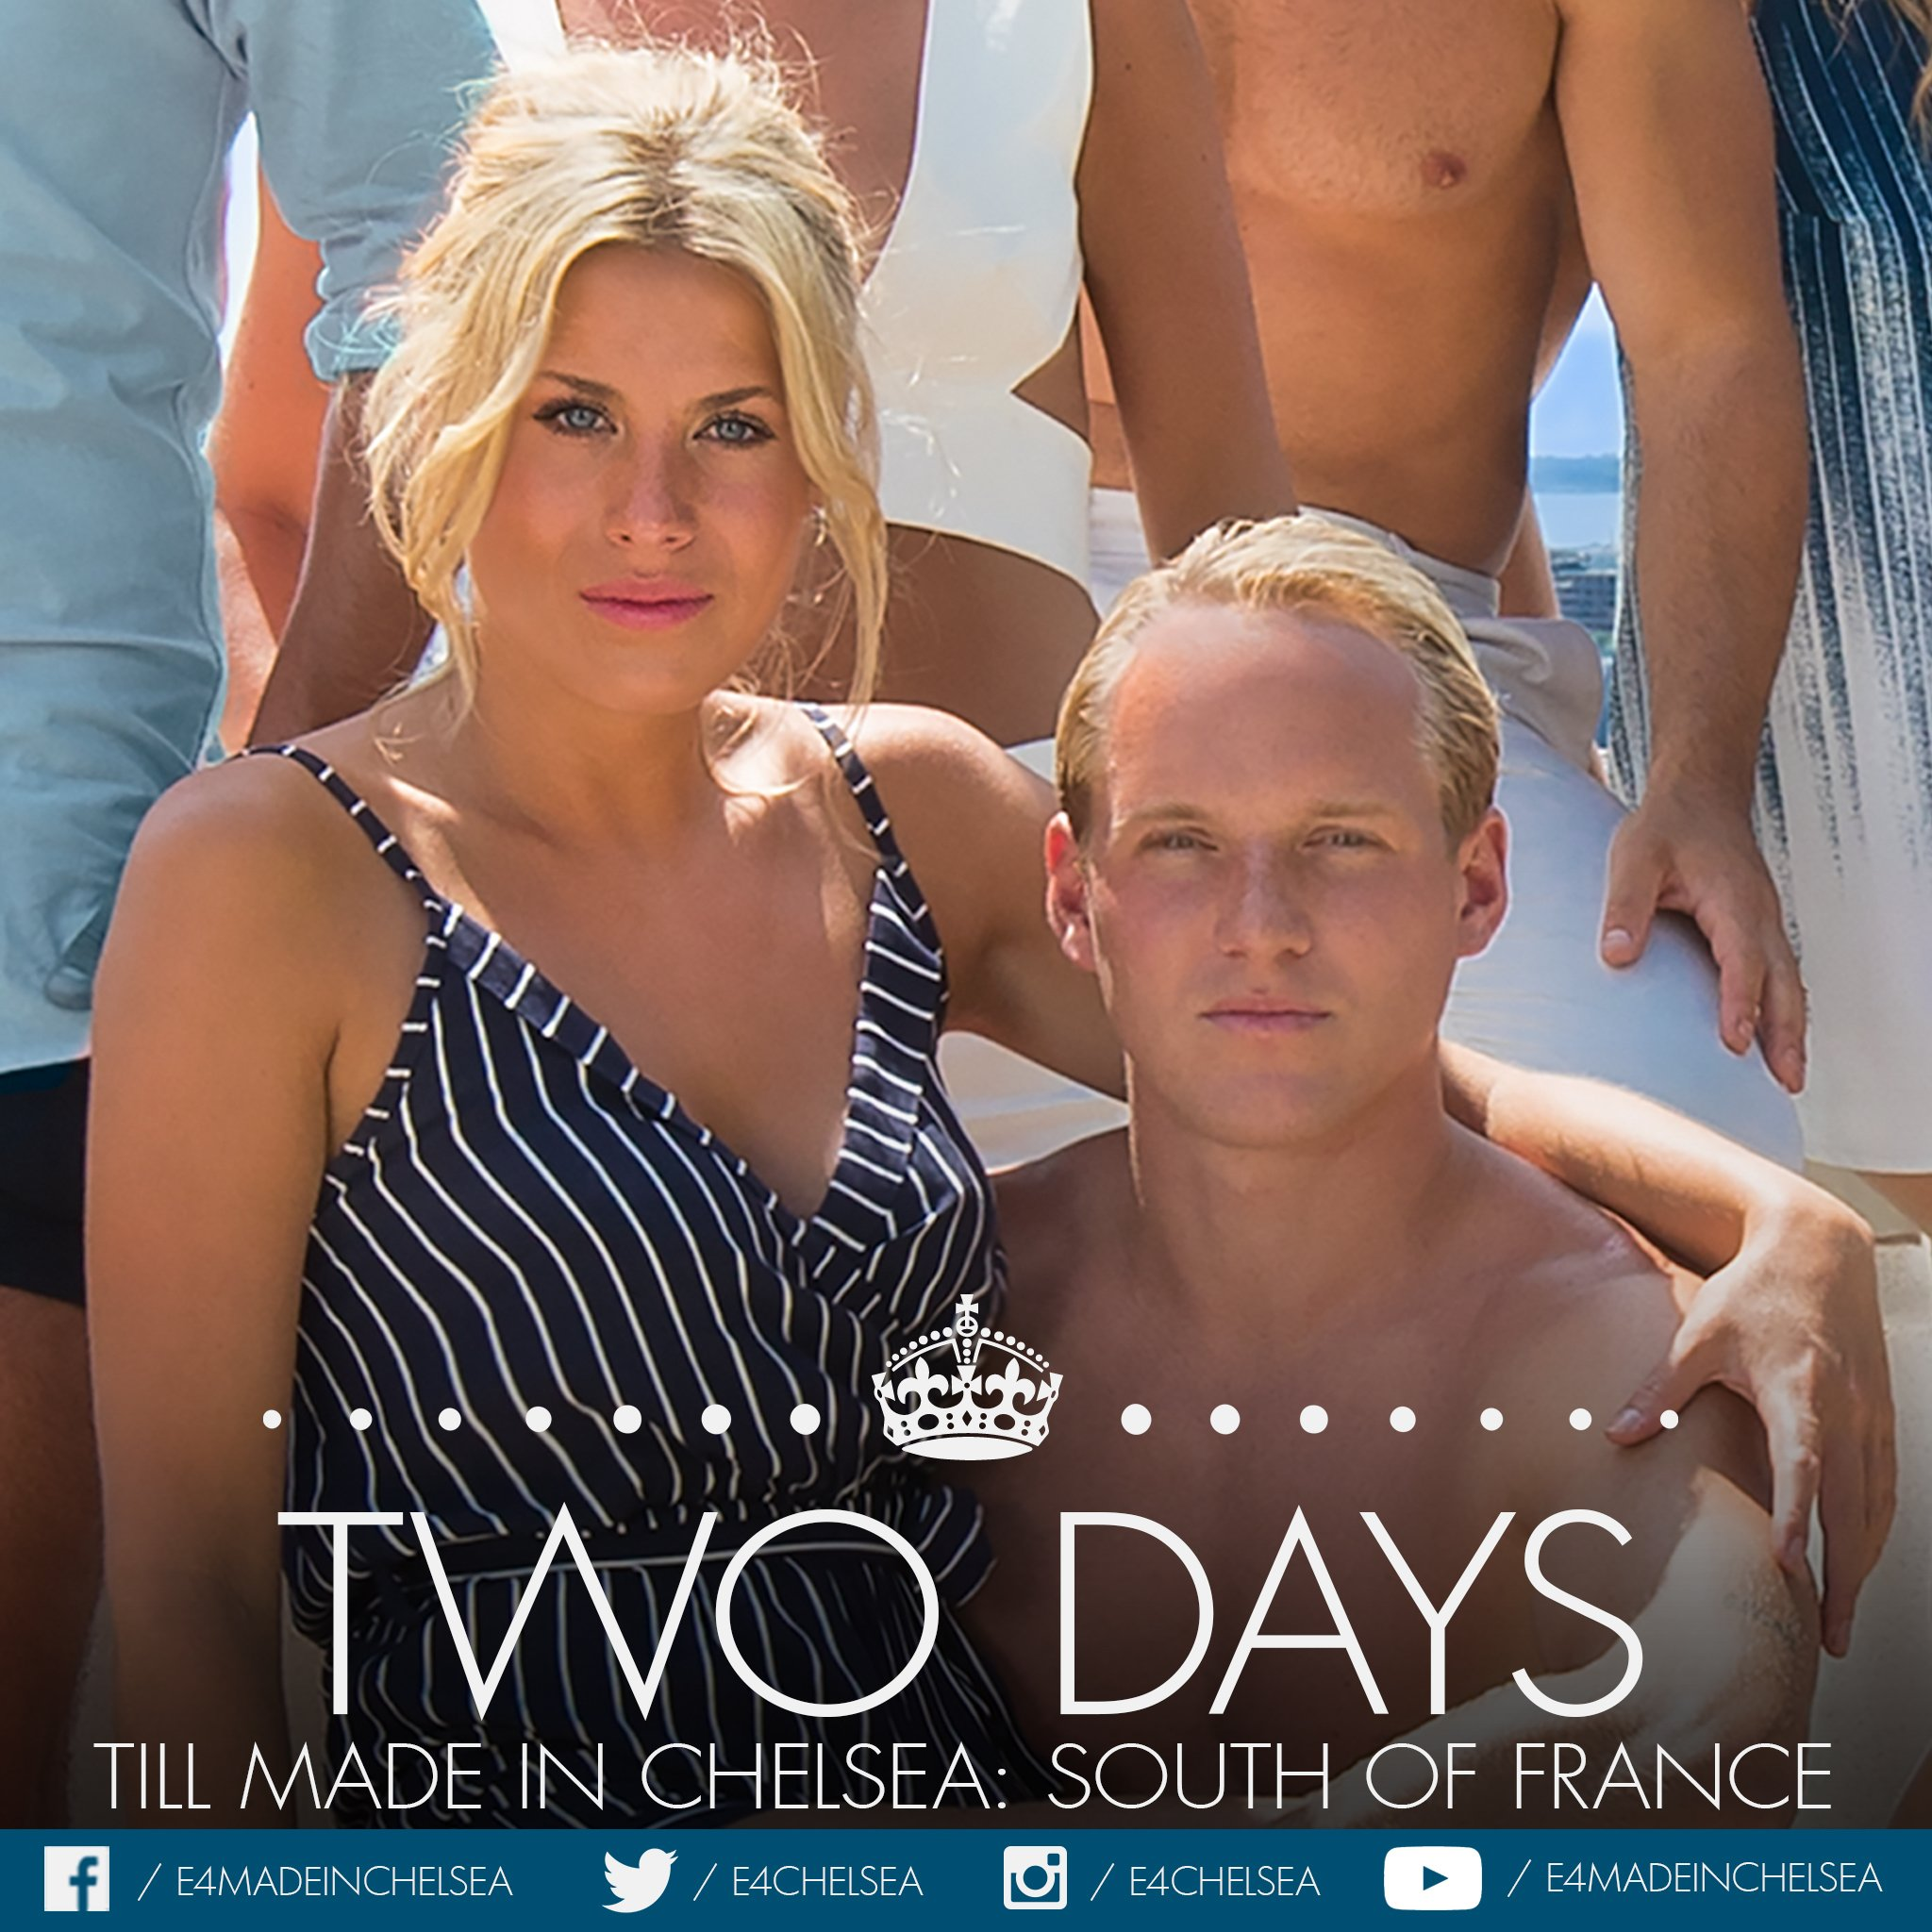 Only two more sleeps till we all wake up in the French Riviera! 😍 #MiCSOF #MadeInChelsea https://t.co/KzlzeknKA6